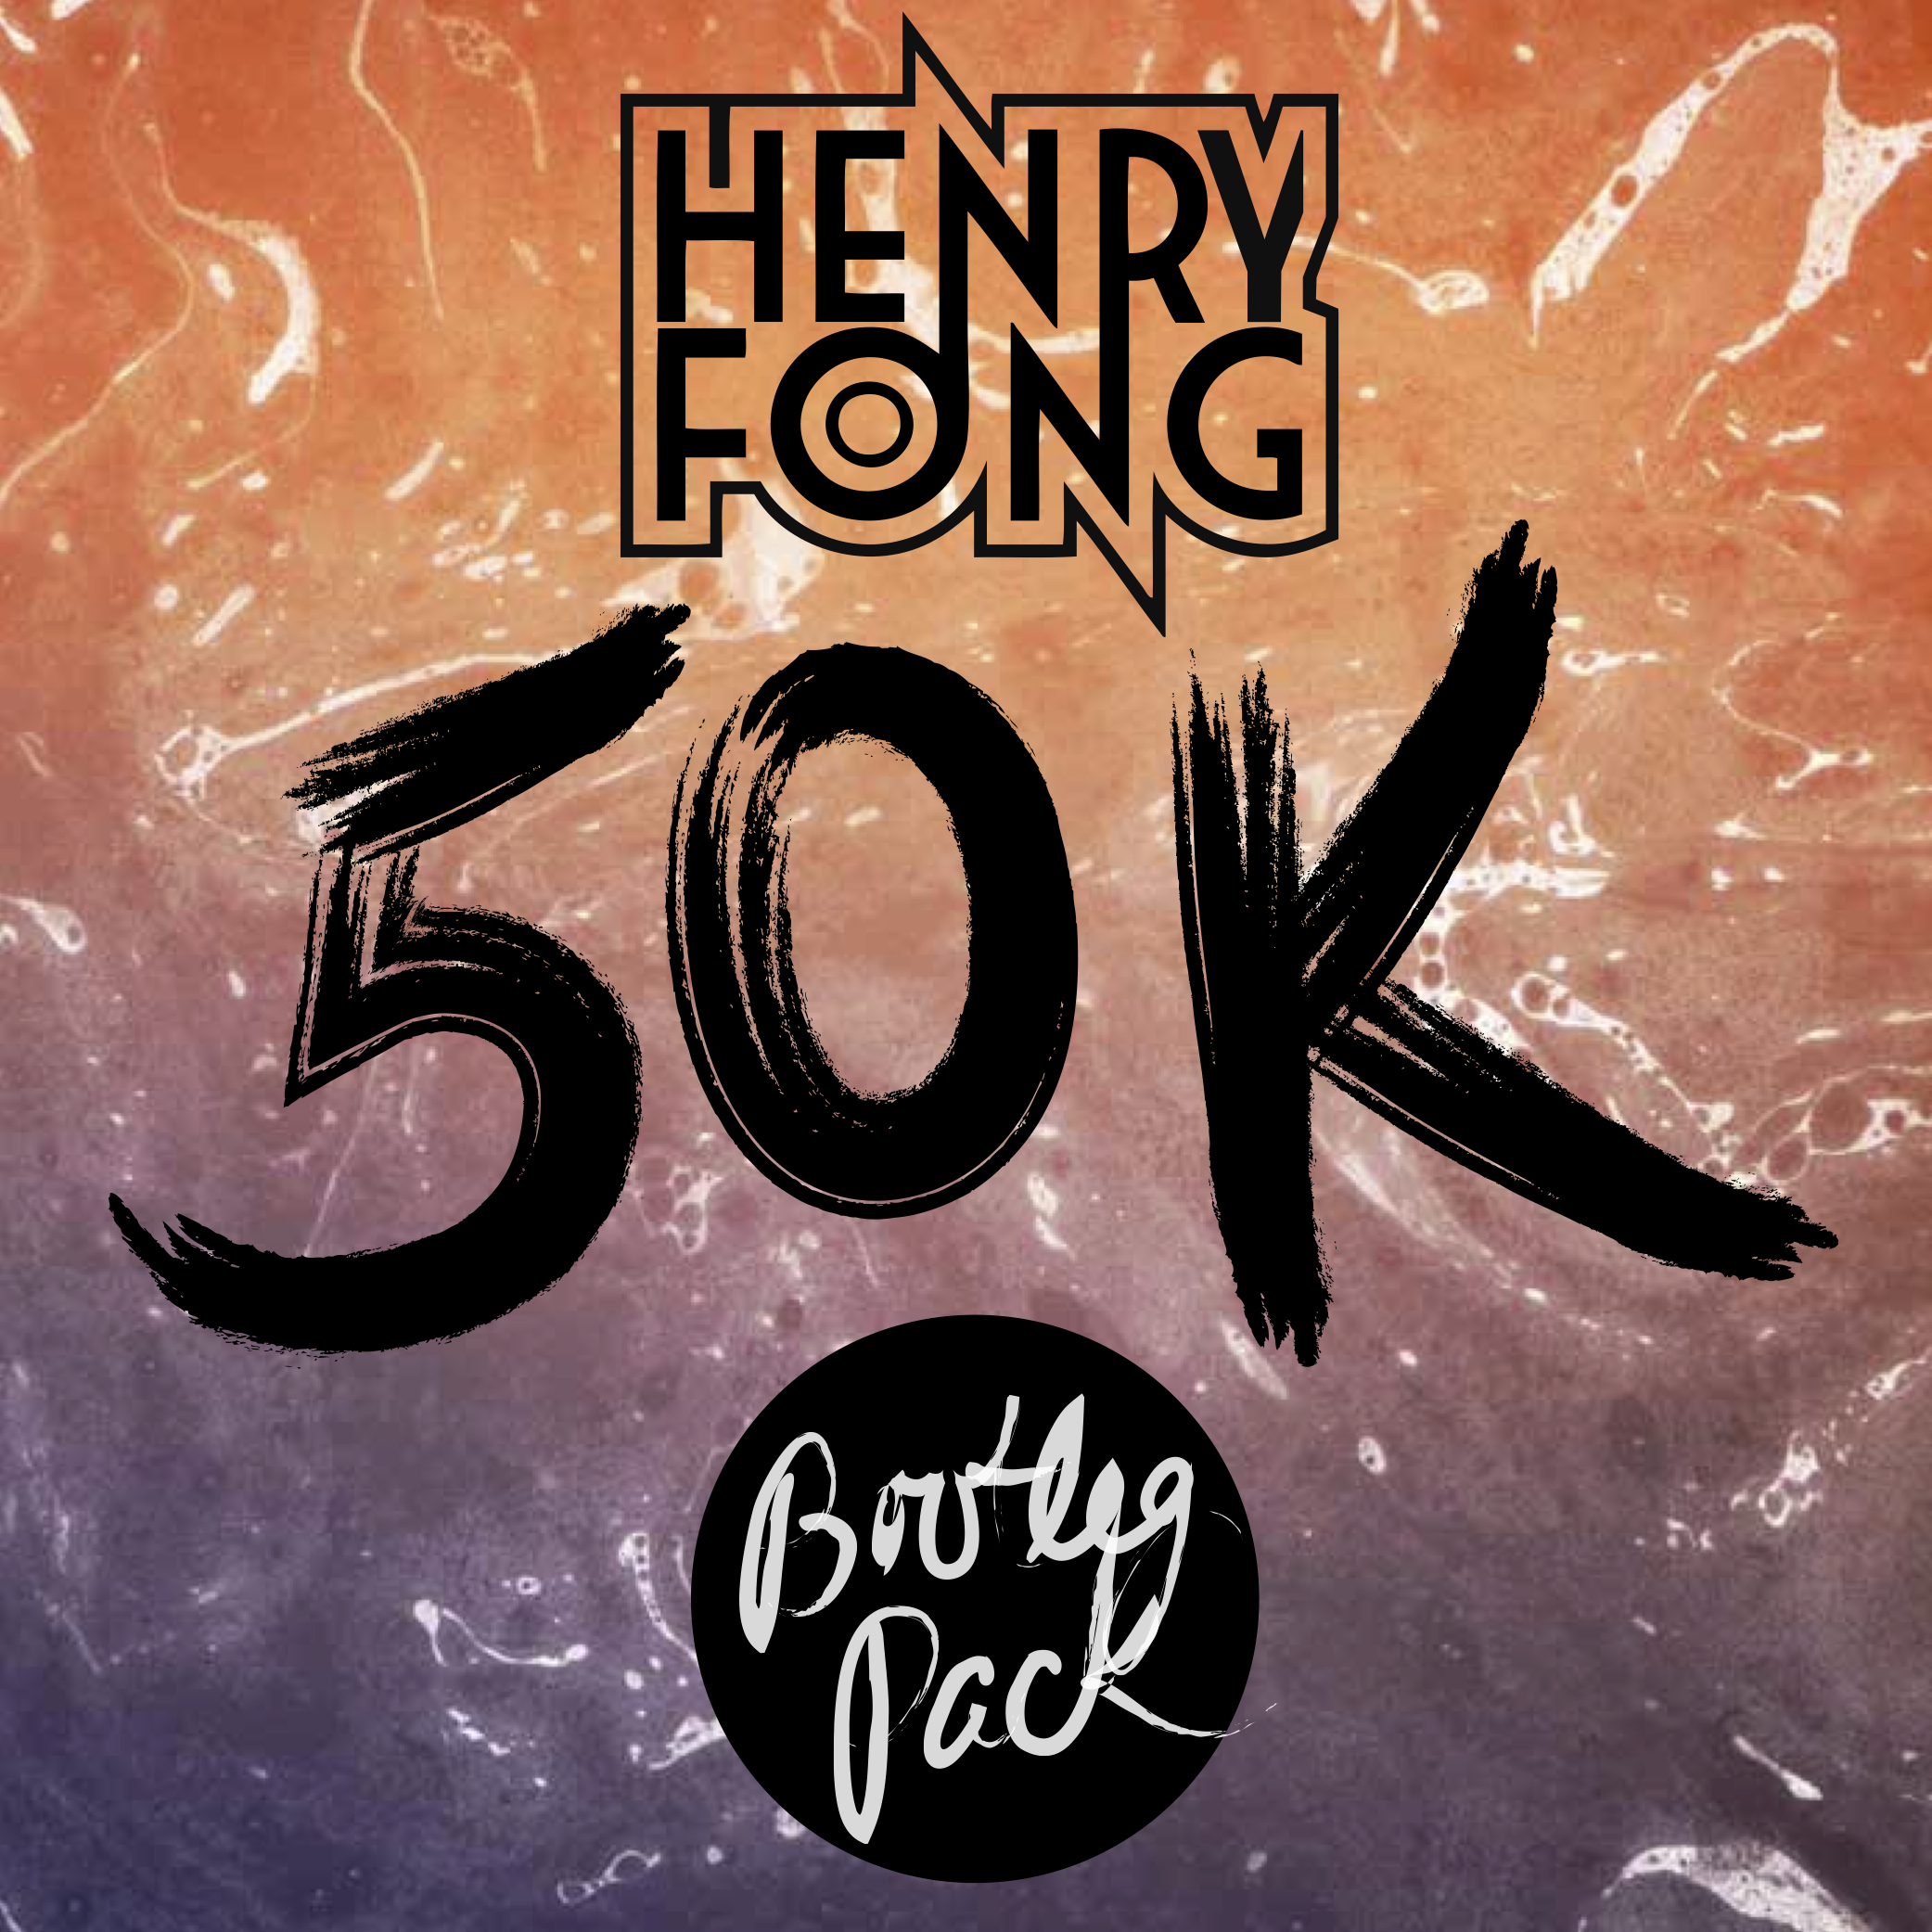 Henry Fong Celebrates 50k Likes With Free Bootleg Pack